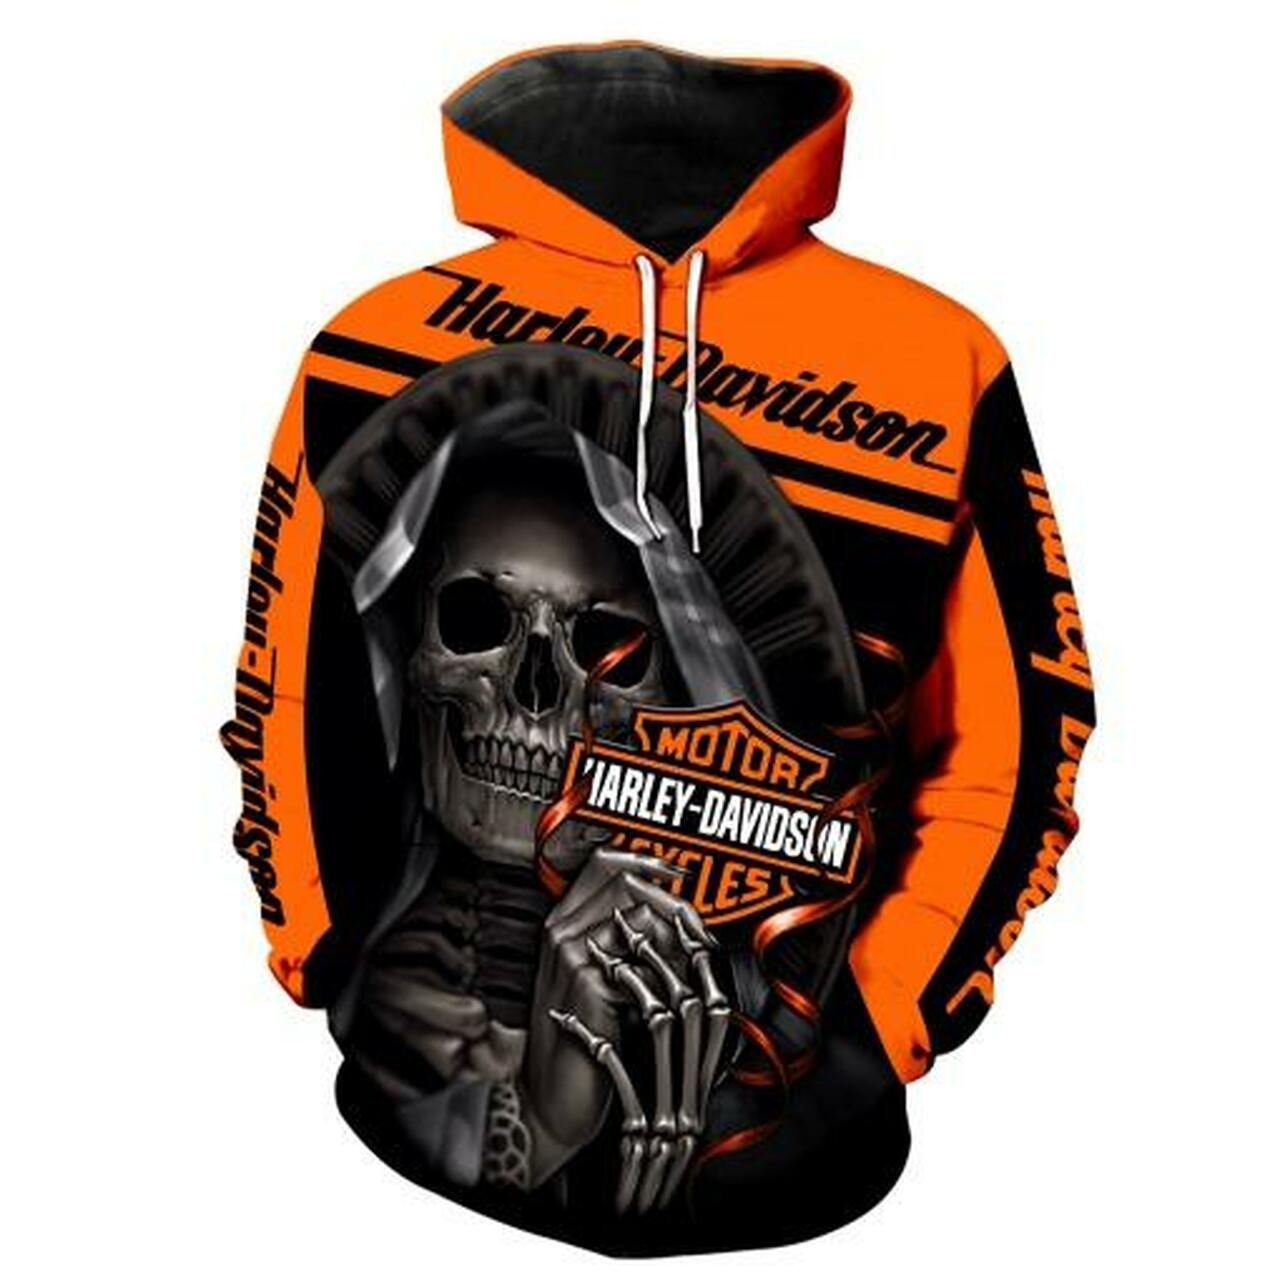 **(OFFICIAL-HARLEY-DAVIDSON-MOTORCYCLE-PULLOVER-HOODIES & GRIM-REAPER/NICE-DETAILED-3D-CUSTOM-GRAPHIC-PRINTED & DOUBLE-SIDED-ALL-OVER-DESIGN/CLASSIC-OFFICIAL-CUSTOM-HARLEY-LOGOS & OFFICIAL-HARLEY-BLACK & ORANGE-COLORS/WARM-PREMIUM-RIDING-HARLEY-BIKERS-STYLISH-PULLOVER-HOODIES)**